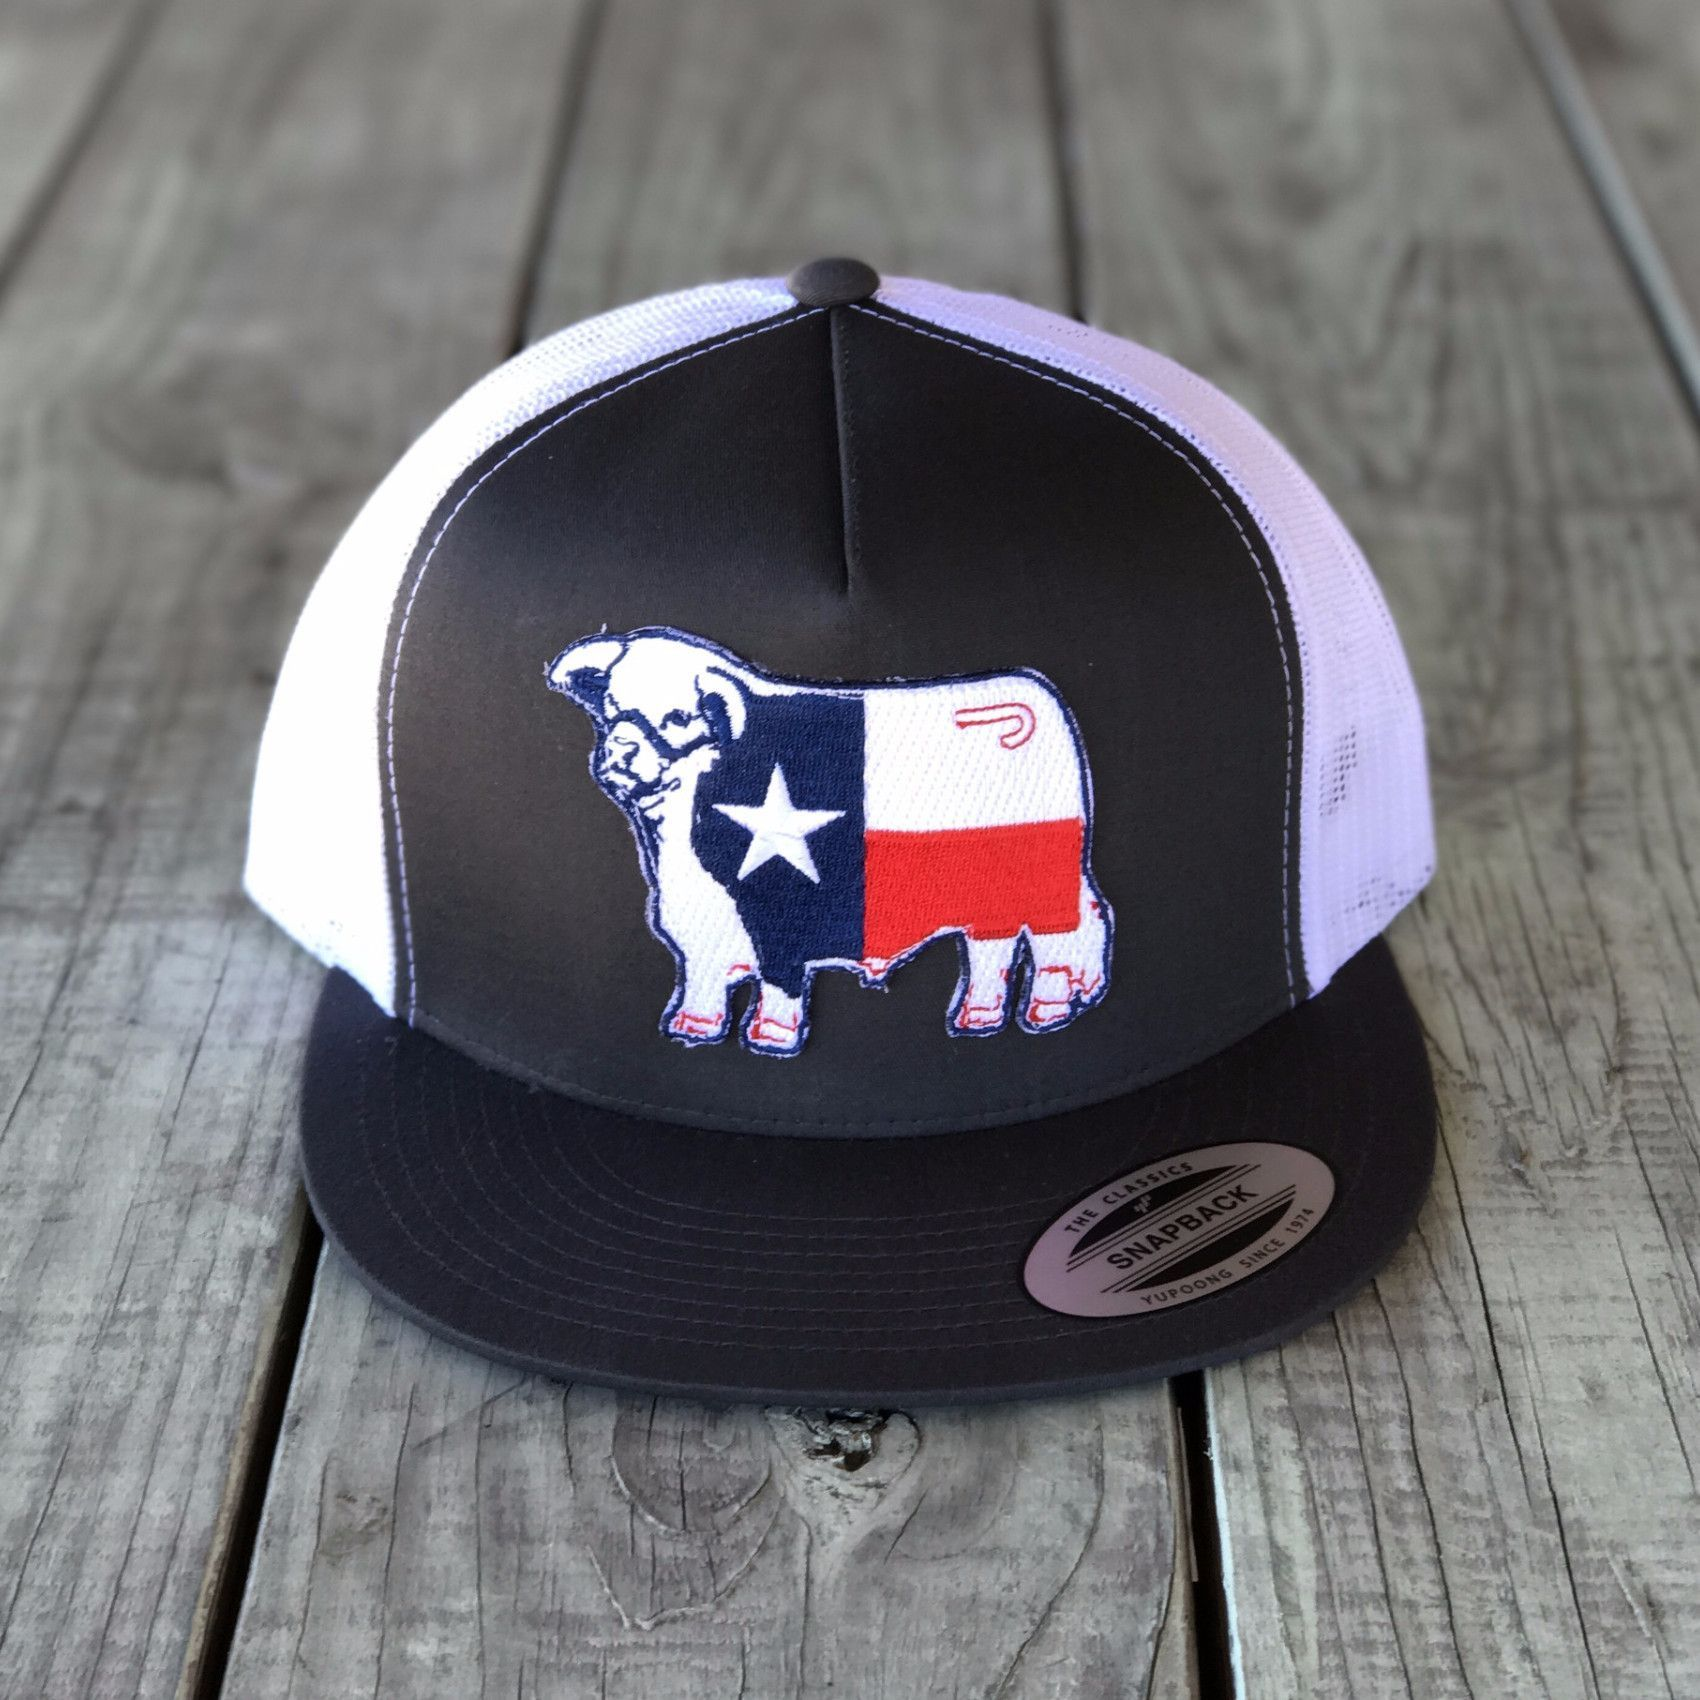 Lazy J  Ranch Wear  Snap Back Cap Rodeo Silver Home Sweet Texas  Trucker